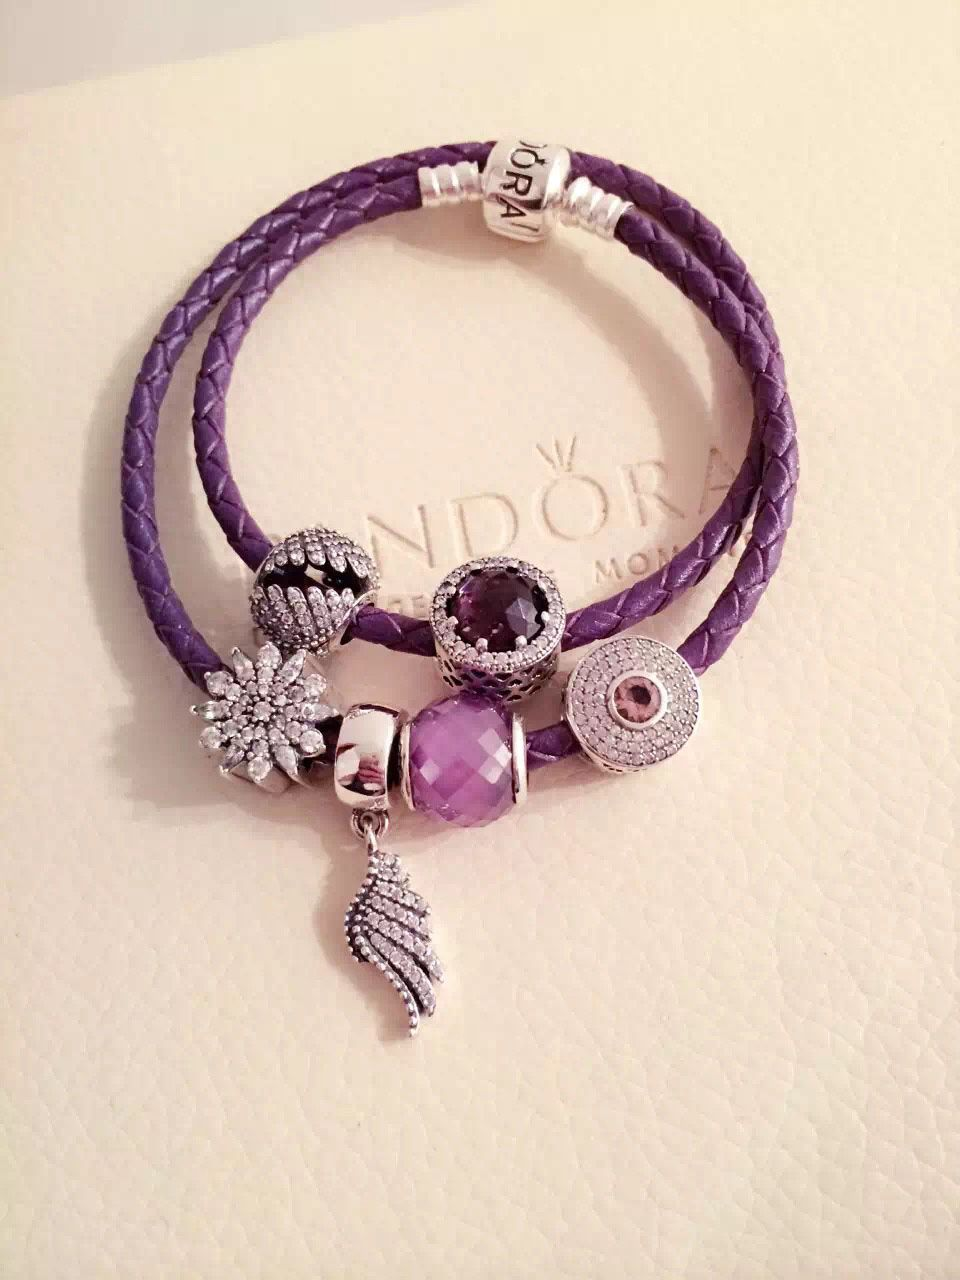 179 Pandora Leather Charm Bracelet Purple Hot Sku Cb02007 Ideas